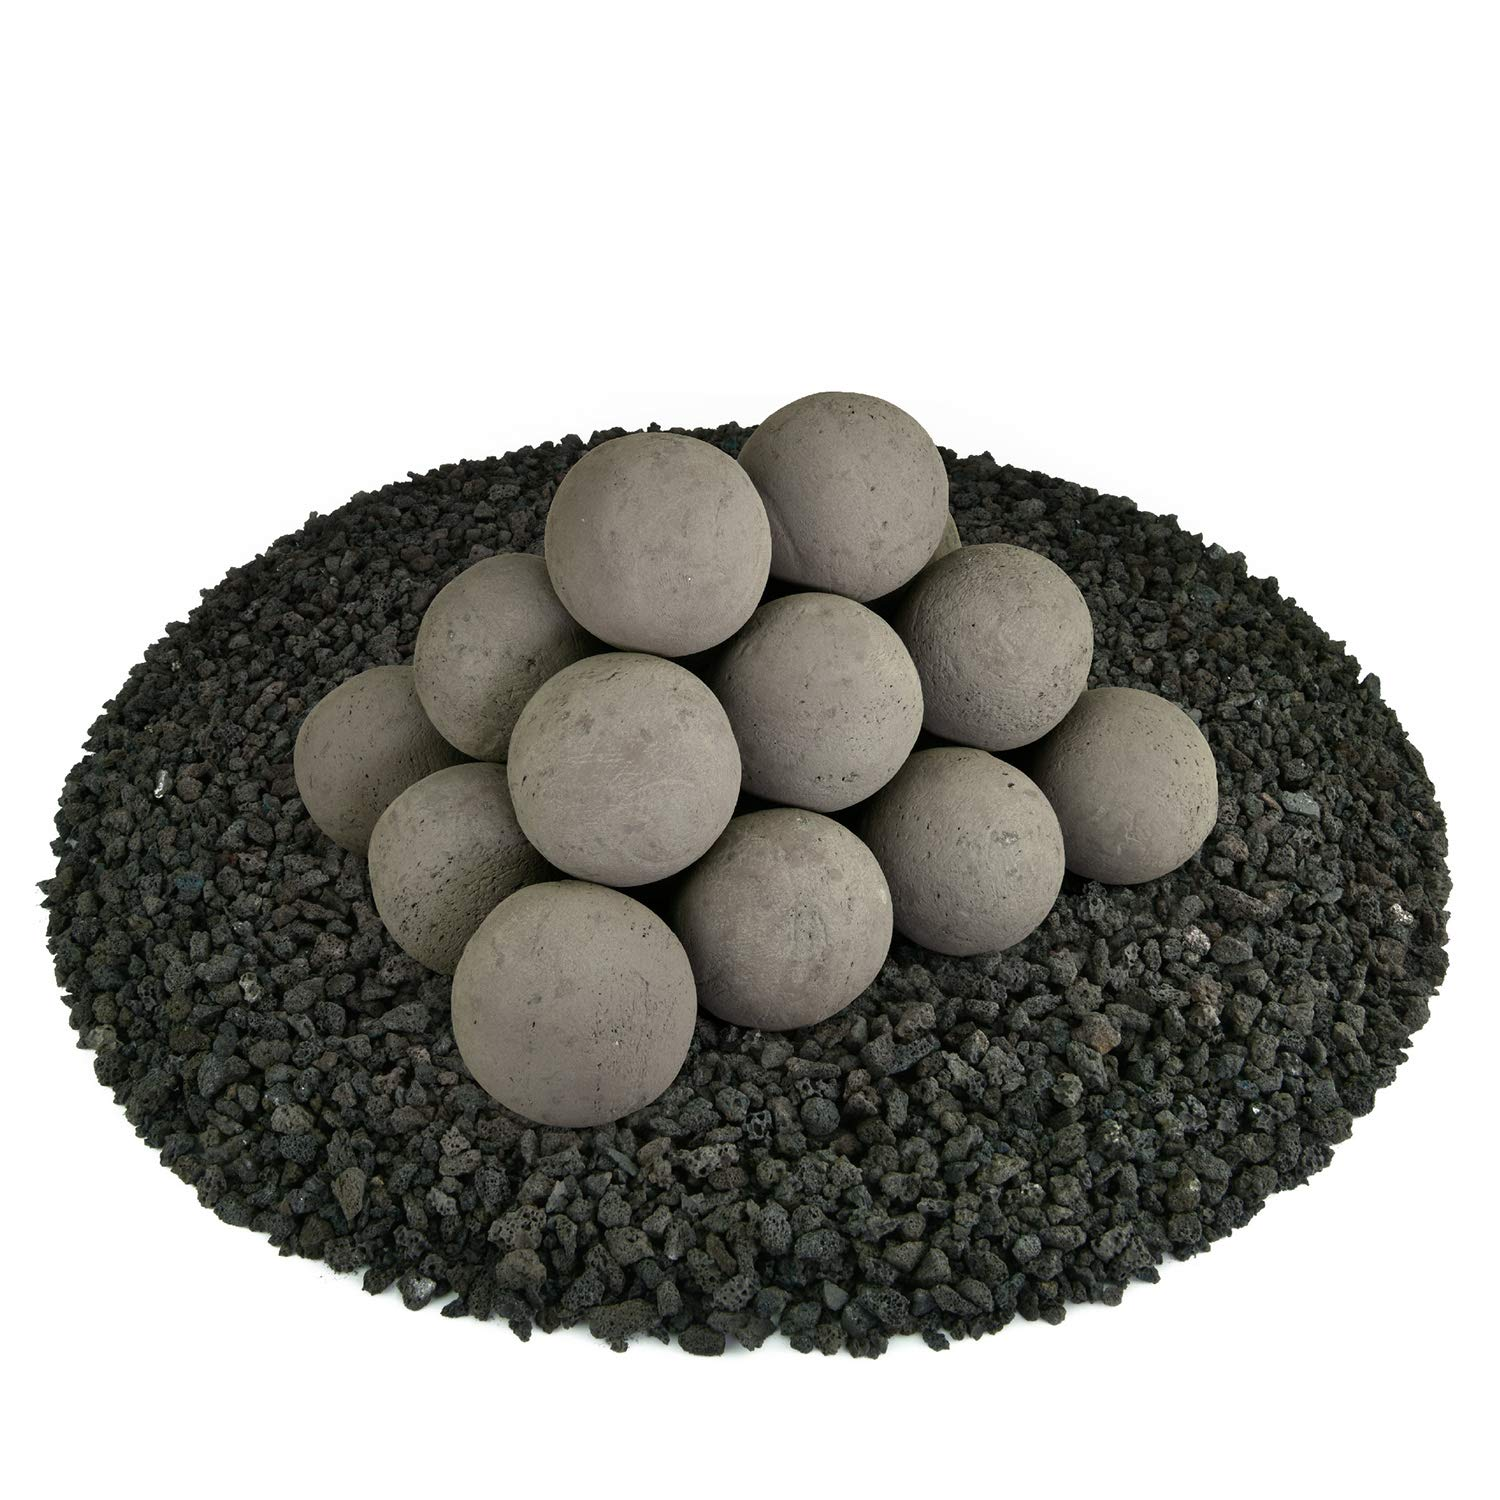 Ceramic Fire Balls | Set of 20 | Modern Accessory for Indoor and Outdoor Fire Pits or Fireplaces – Brushed Concrete Look | Charcoal Gray, 3 Inch